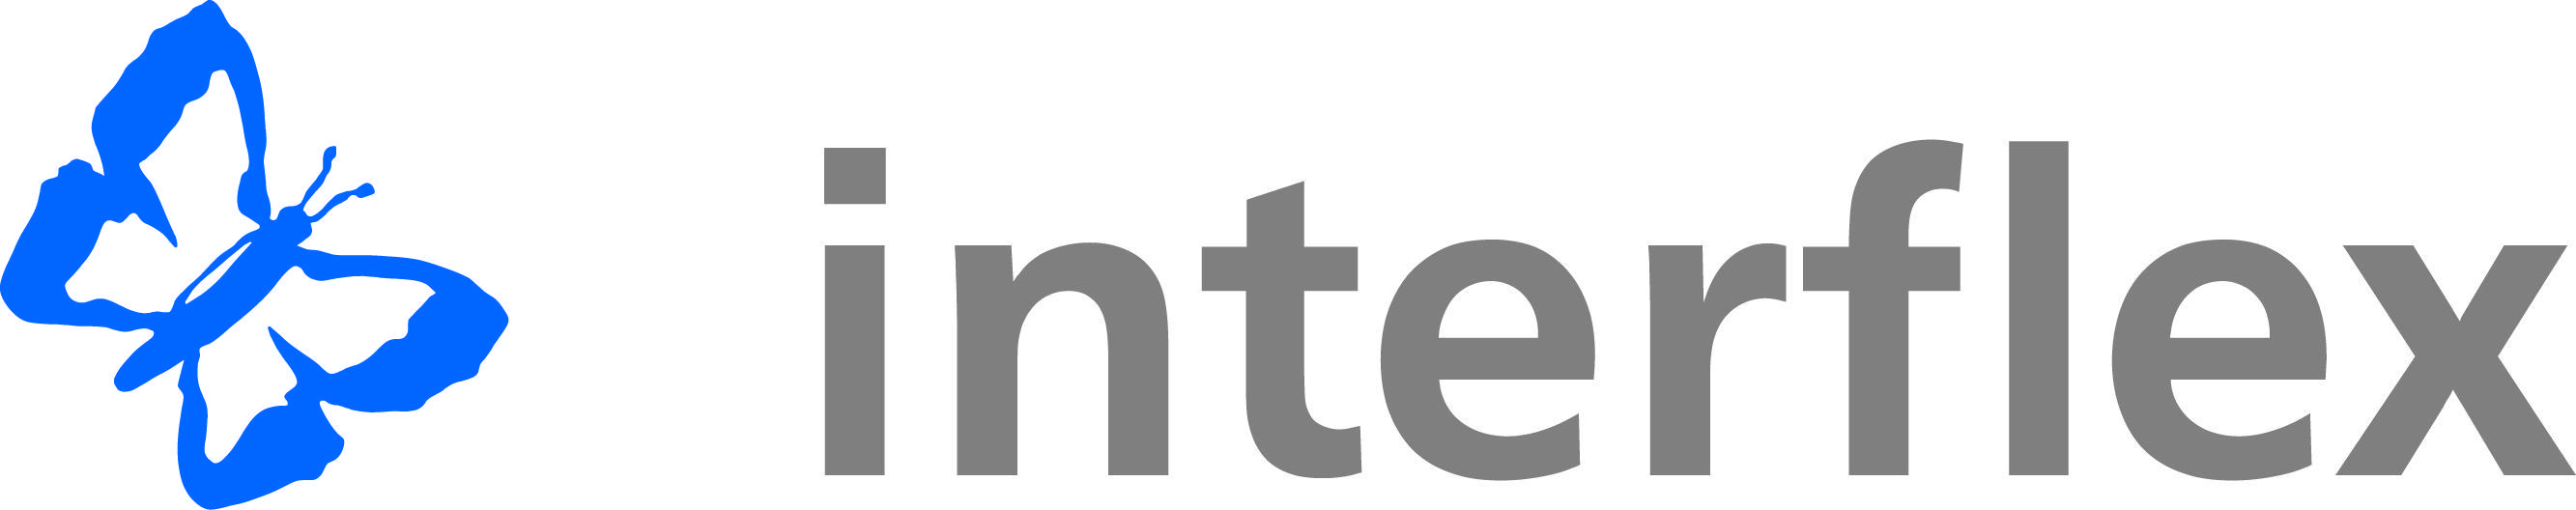 interflex logo neu - Interflex